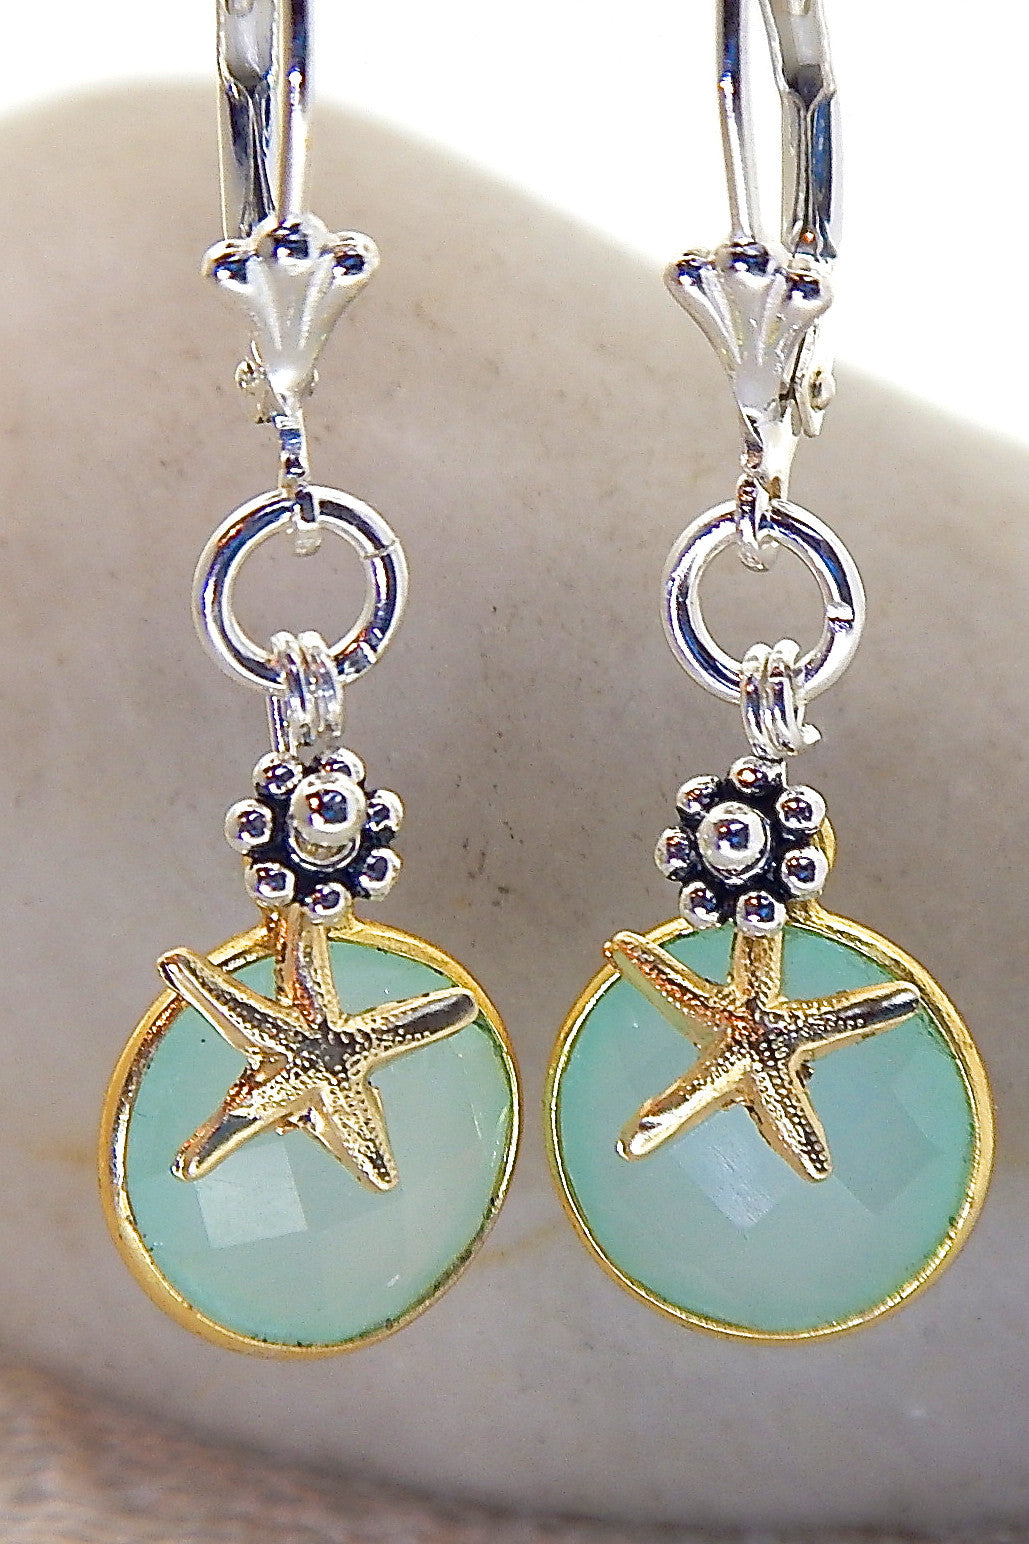 Ocean Earrings - Starfish Accented